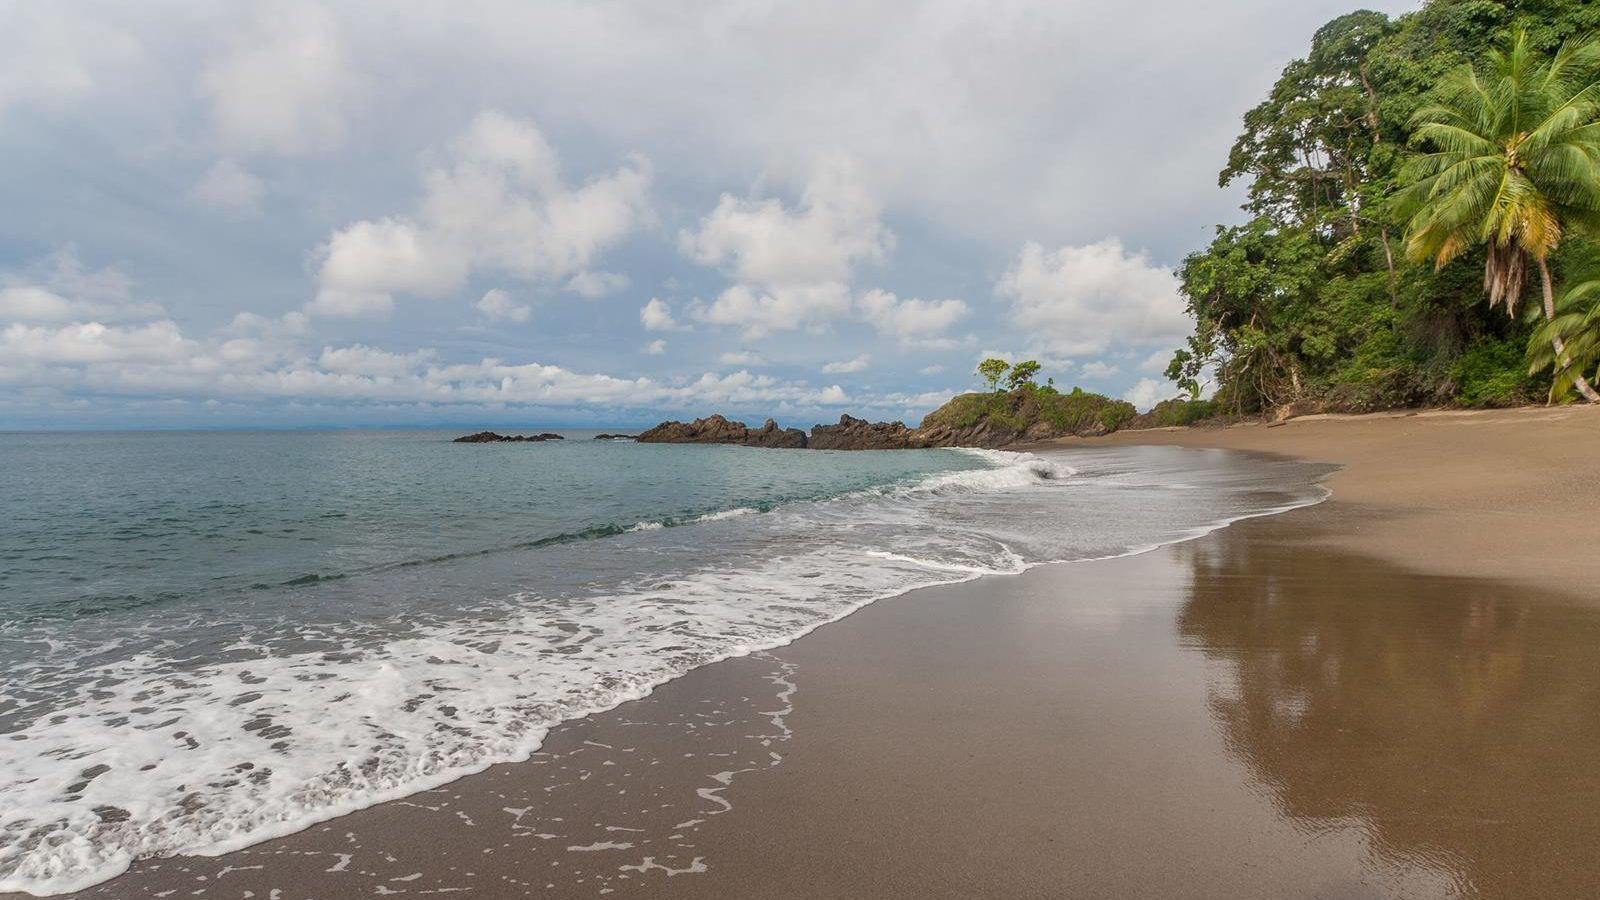 Beach of Manuel Antonio National Park in Costa Rica